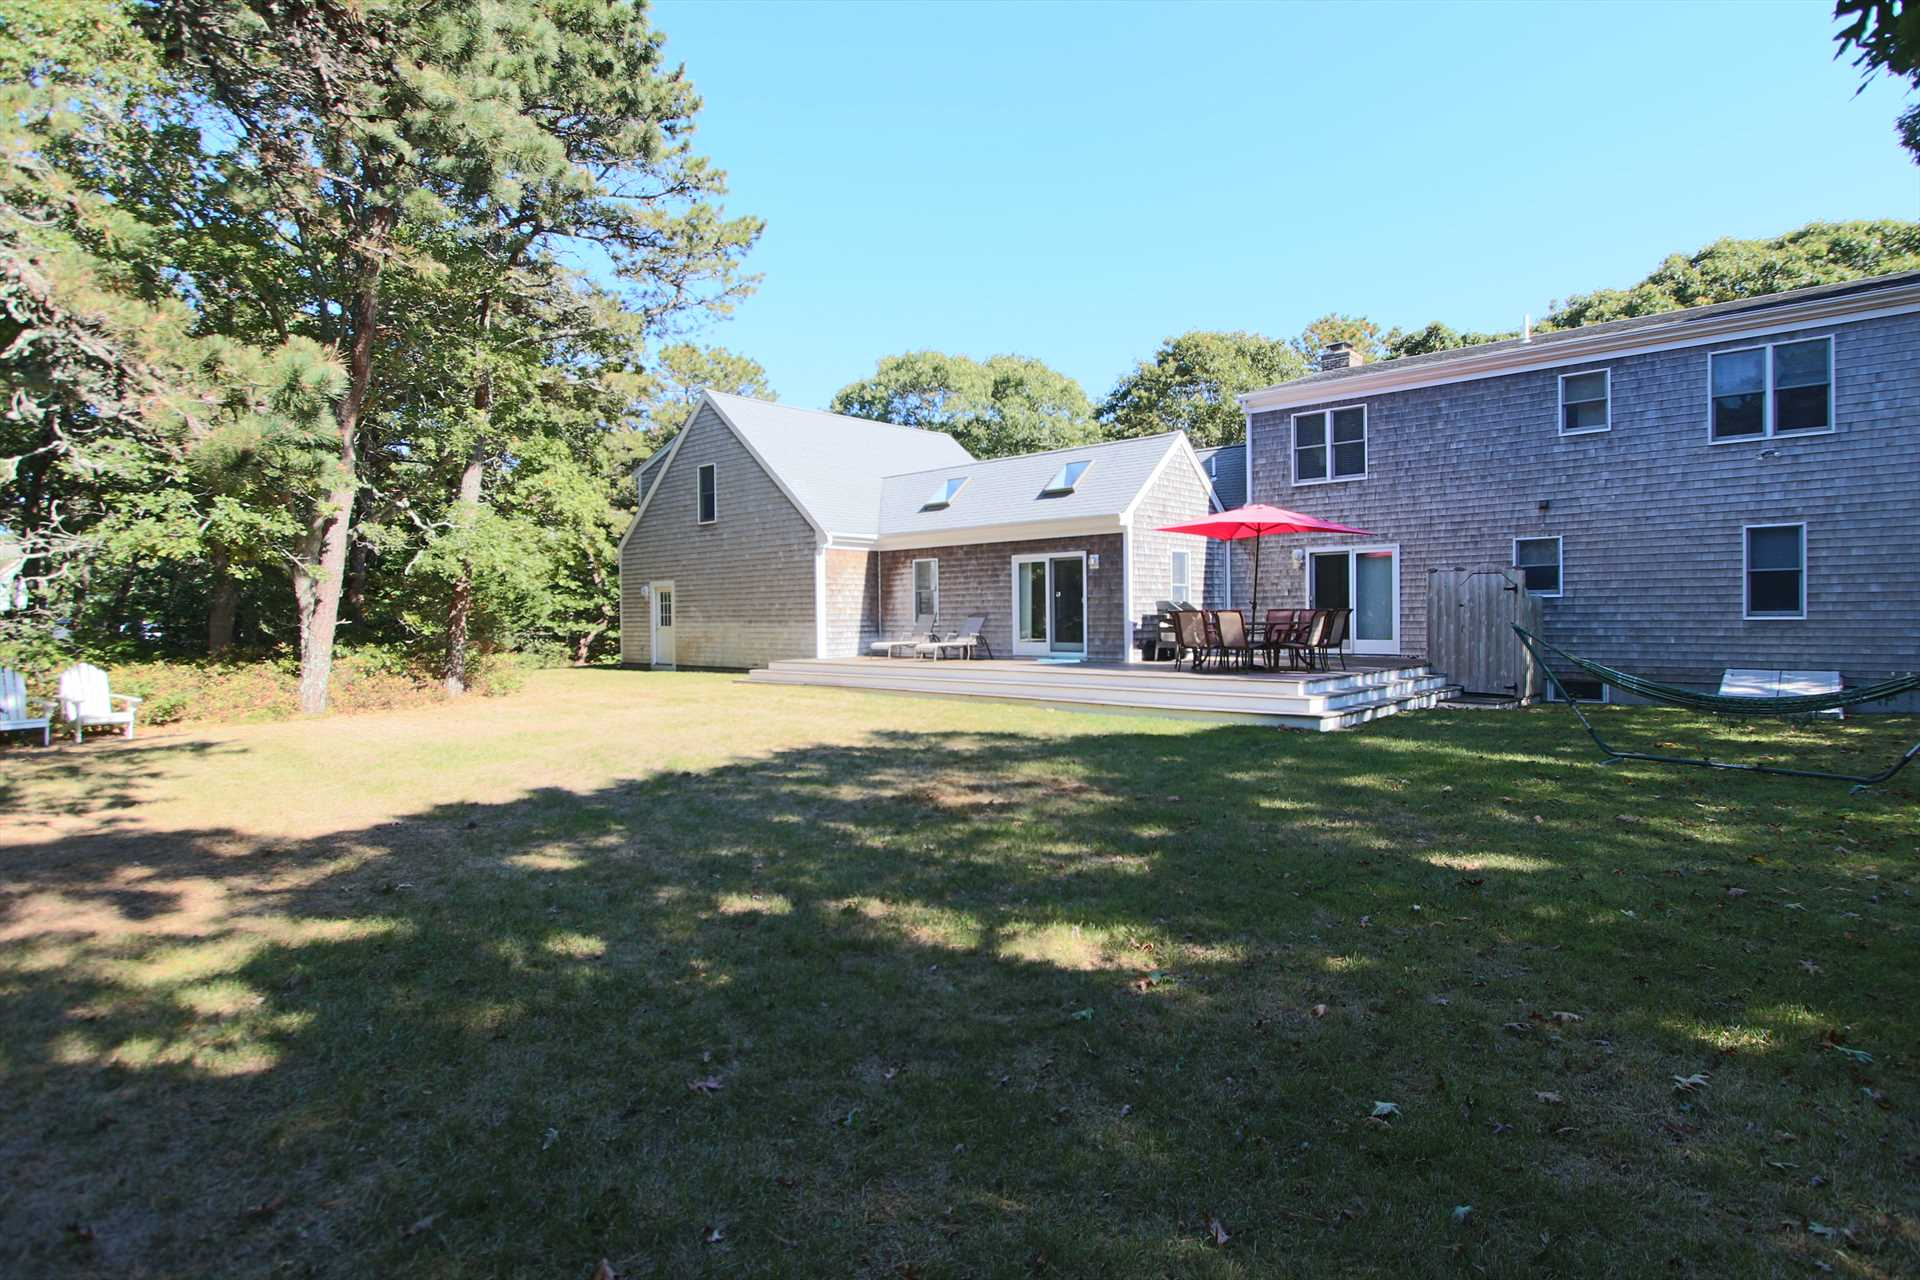 Back of the House - Big Lawn, lots of Space